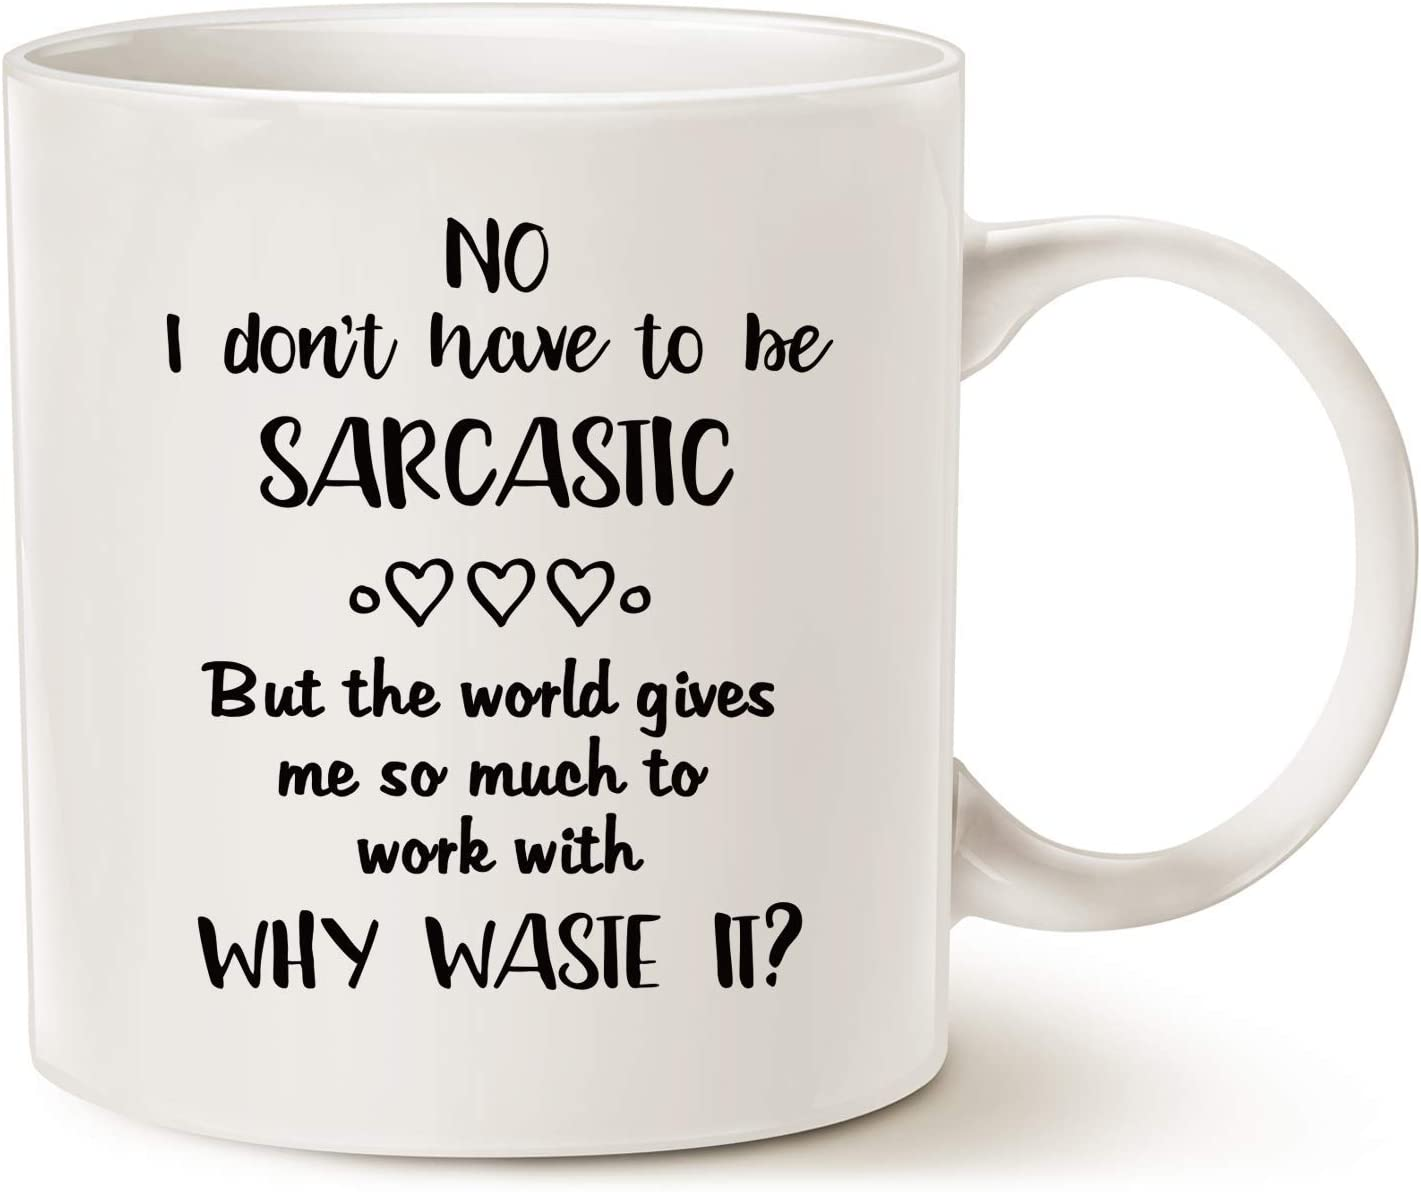 Funny Quote Coffee Mug, Hilarious Why Waste Sarcastic Opportunity Best Home and Office Gifts for Friend Porcelain Cup White